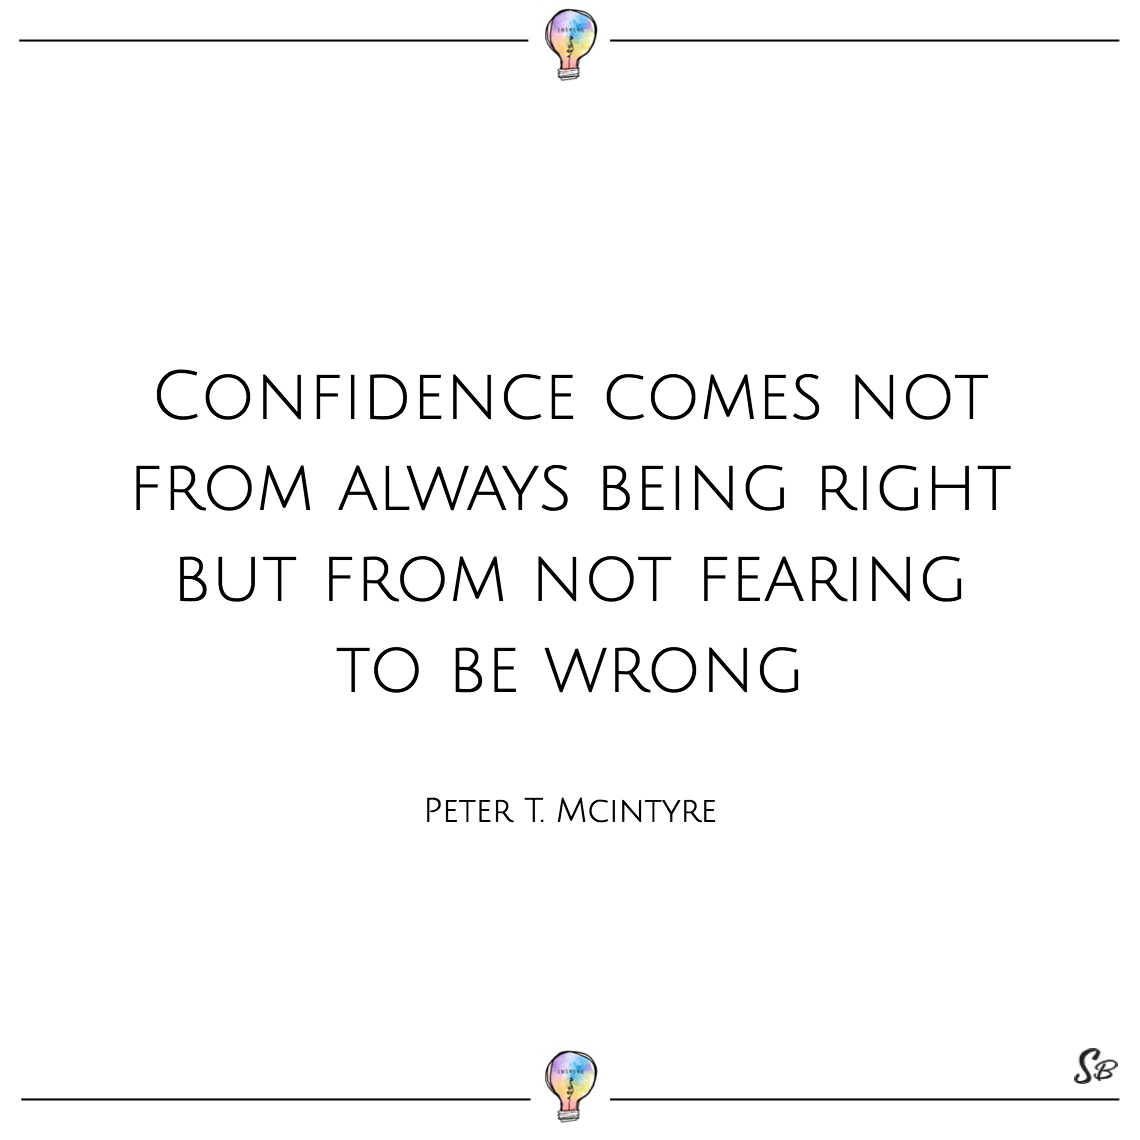 Confidence comes not from always being right but from not fearing to be wrong peter t. mcintyre